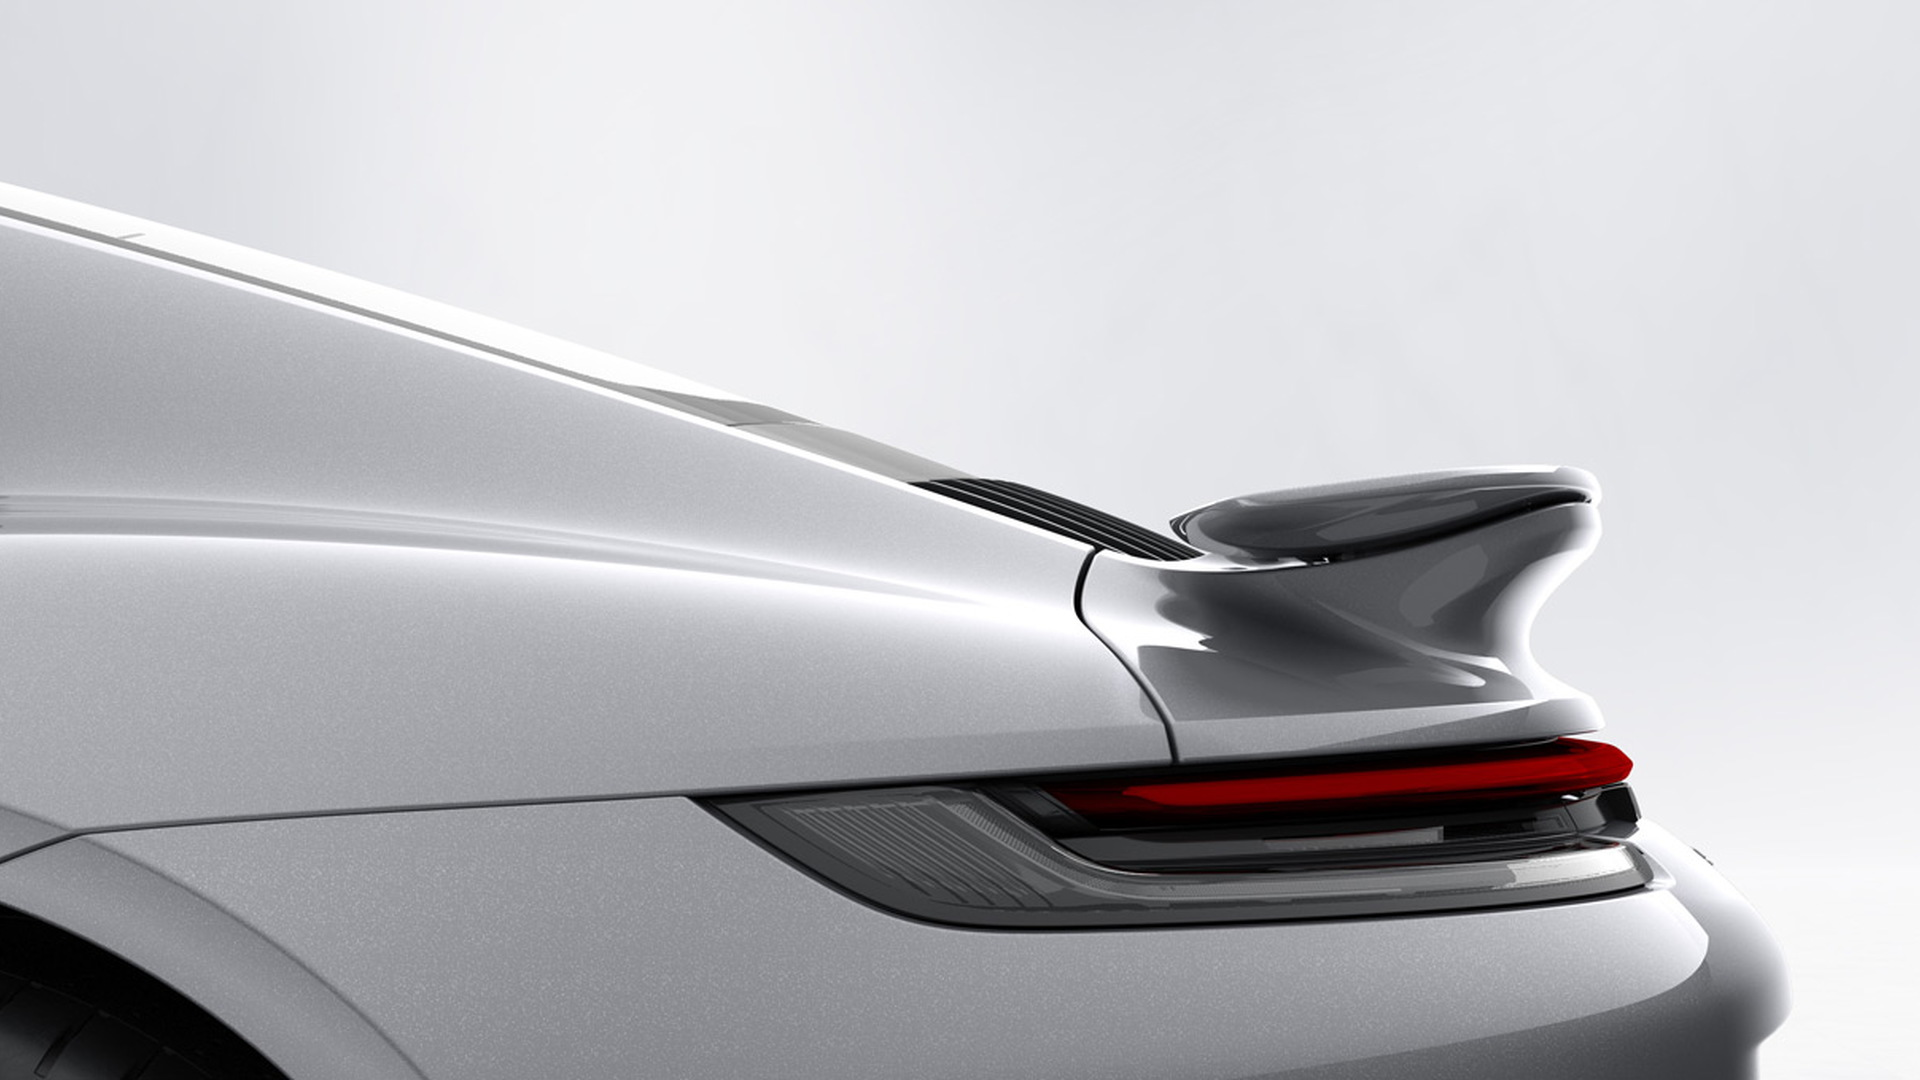 992-generation Porsche 911 Turbo S active rear wing